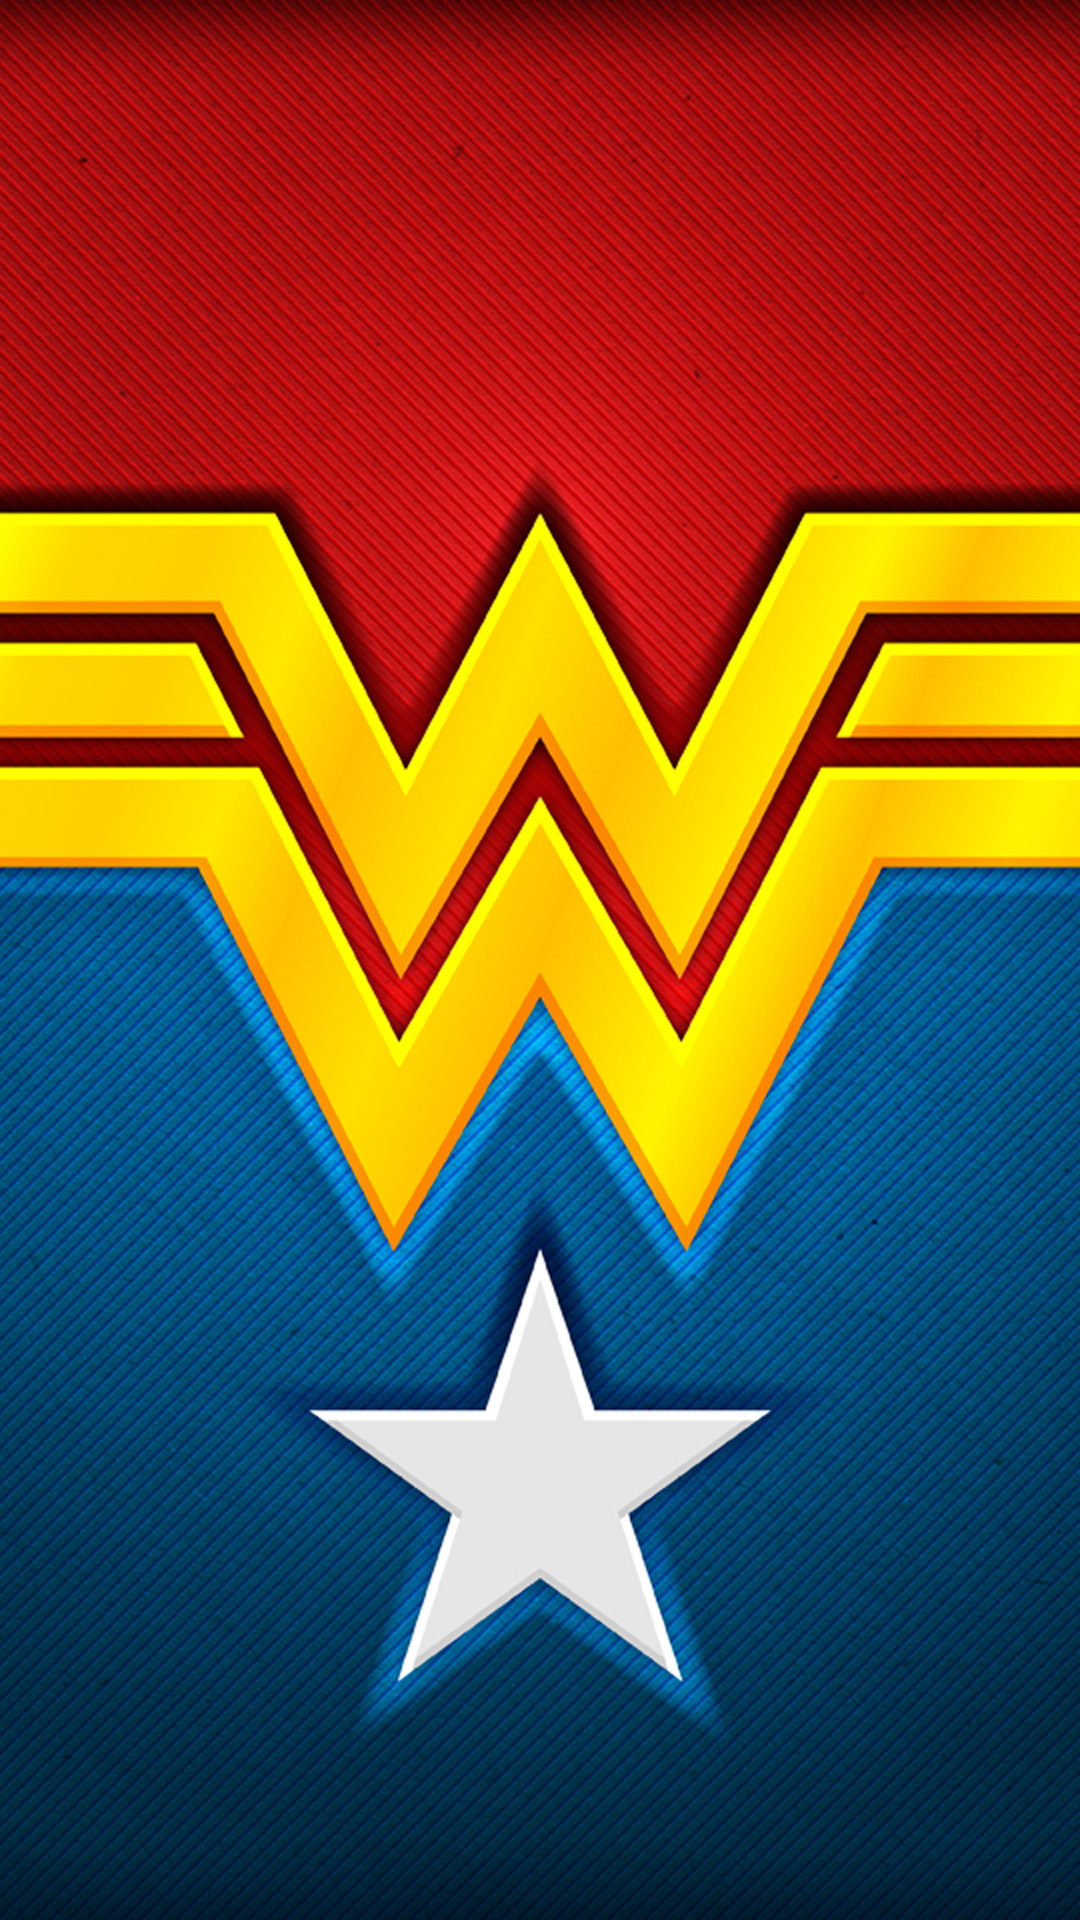 Free Download Wonder Woman Hd Wallpaper Iphone 6 Plus